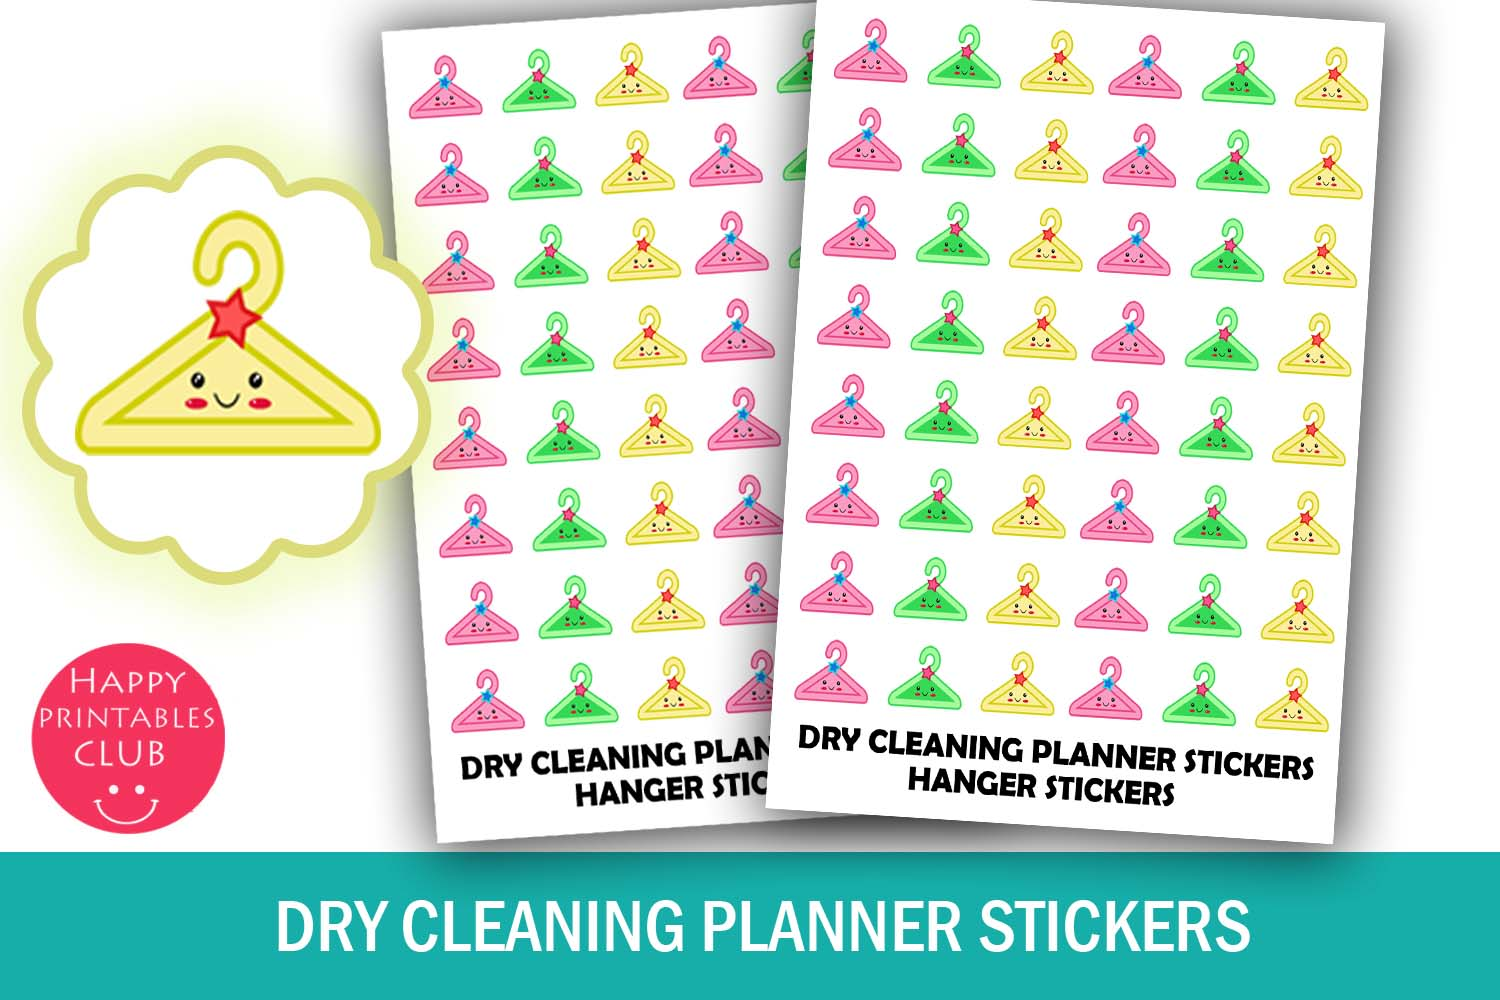 Dry Cleaning Planner Stickers- Hanger Stickers-Laundry example image 1